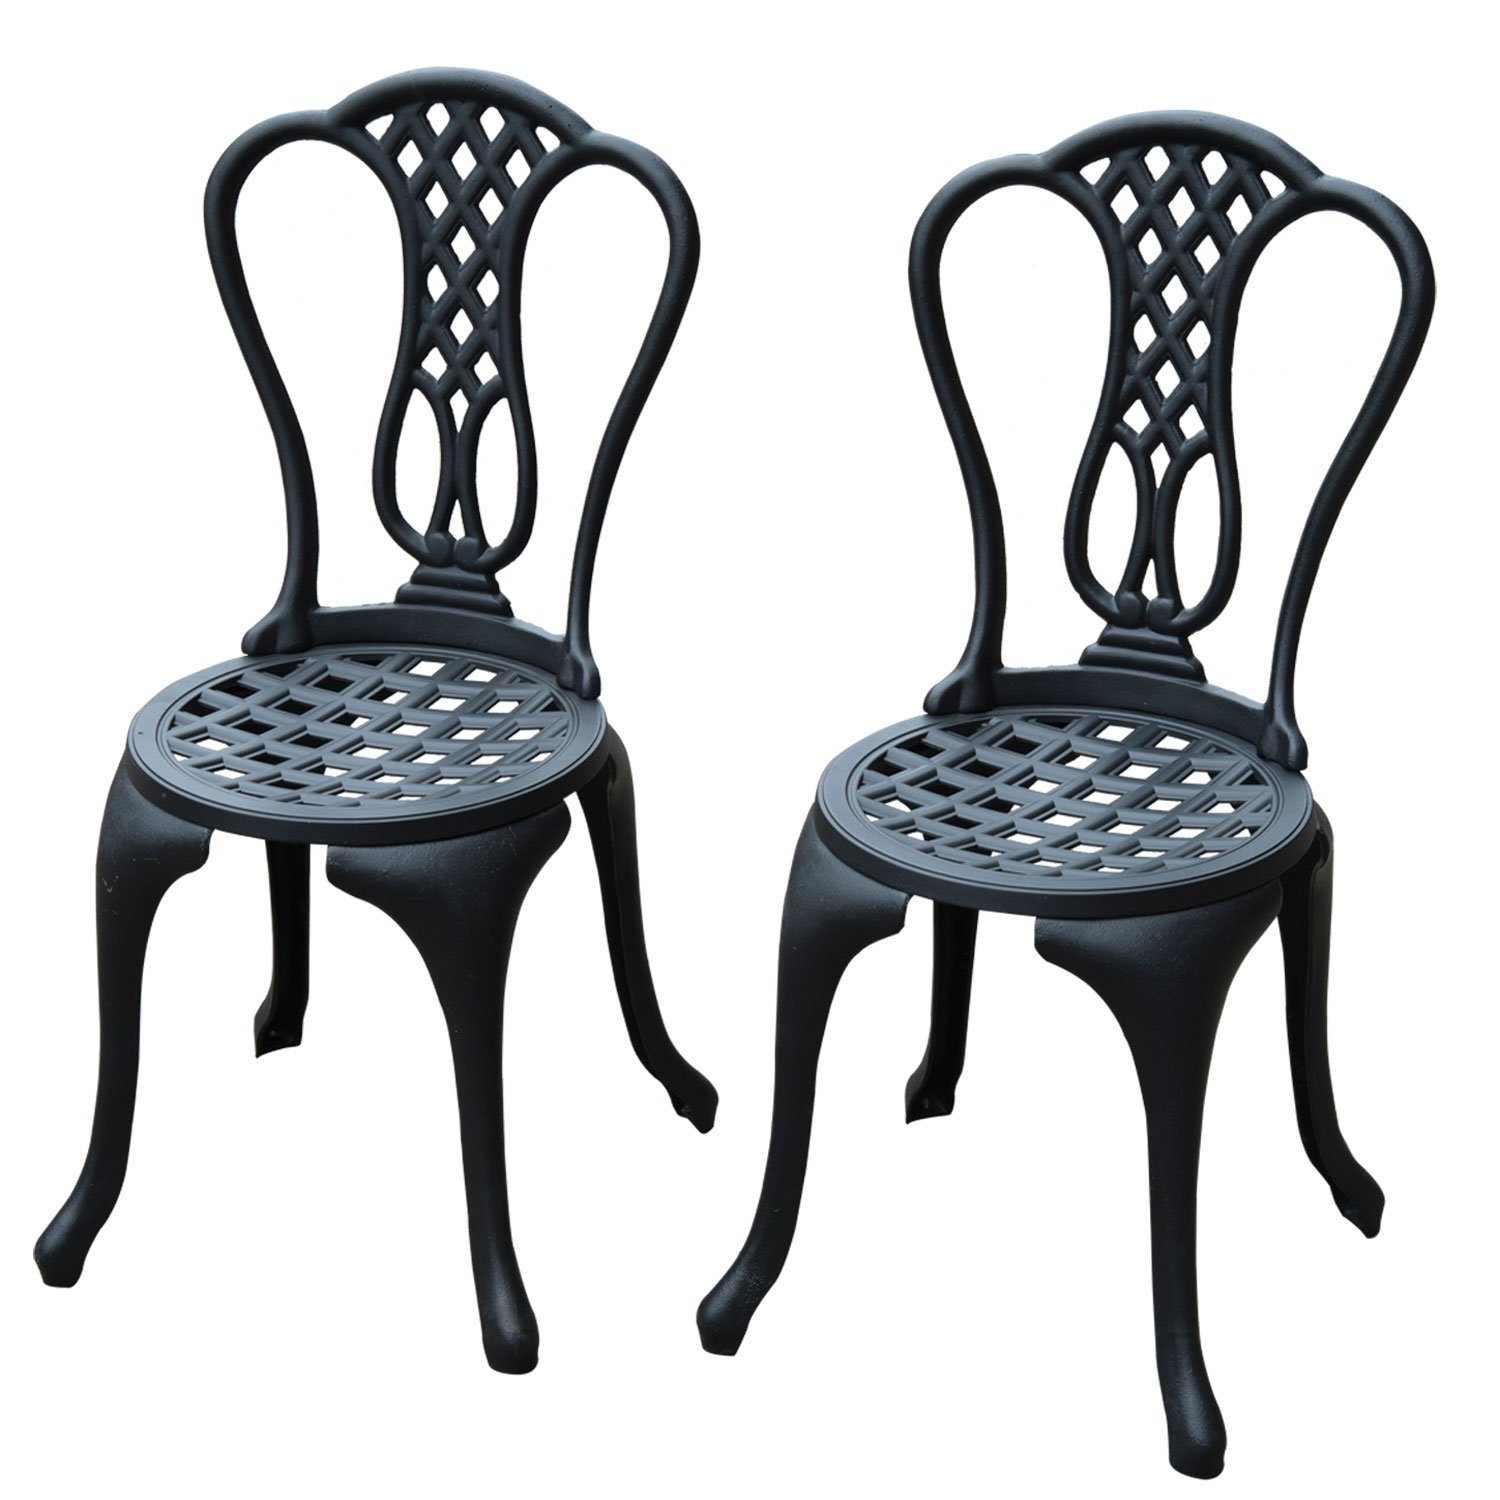 Homcom 3 Piece Patio Cast Aluminium Bistro Set Garden Outdoor Furniture  Table And Chairs Shabby Chic Style: Amazon.co.uk: Garden U0026 Outdoors